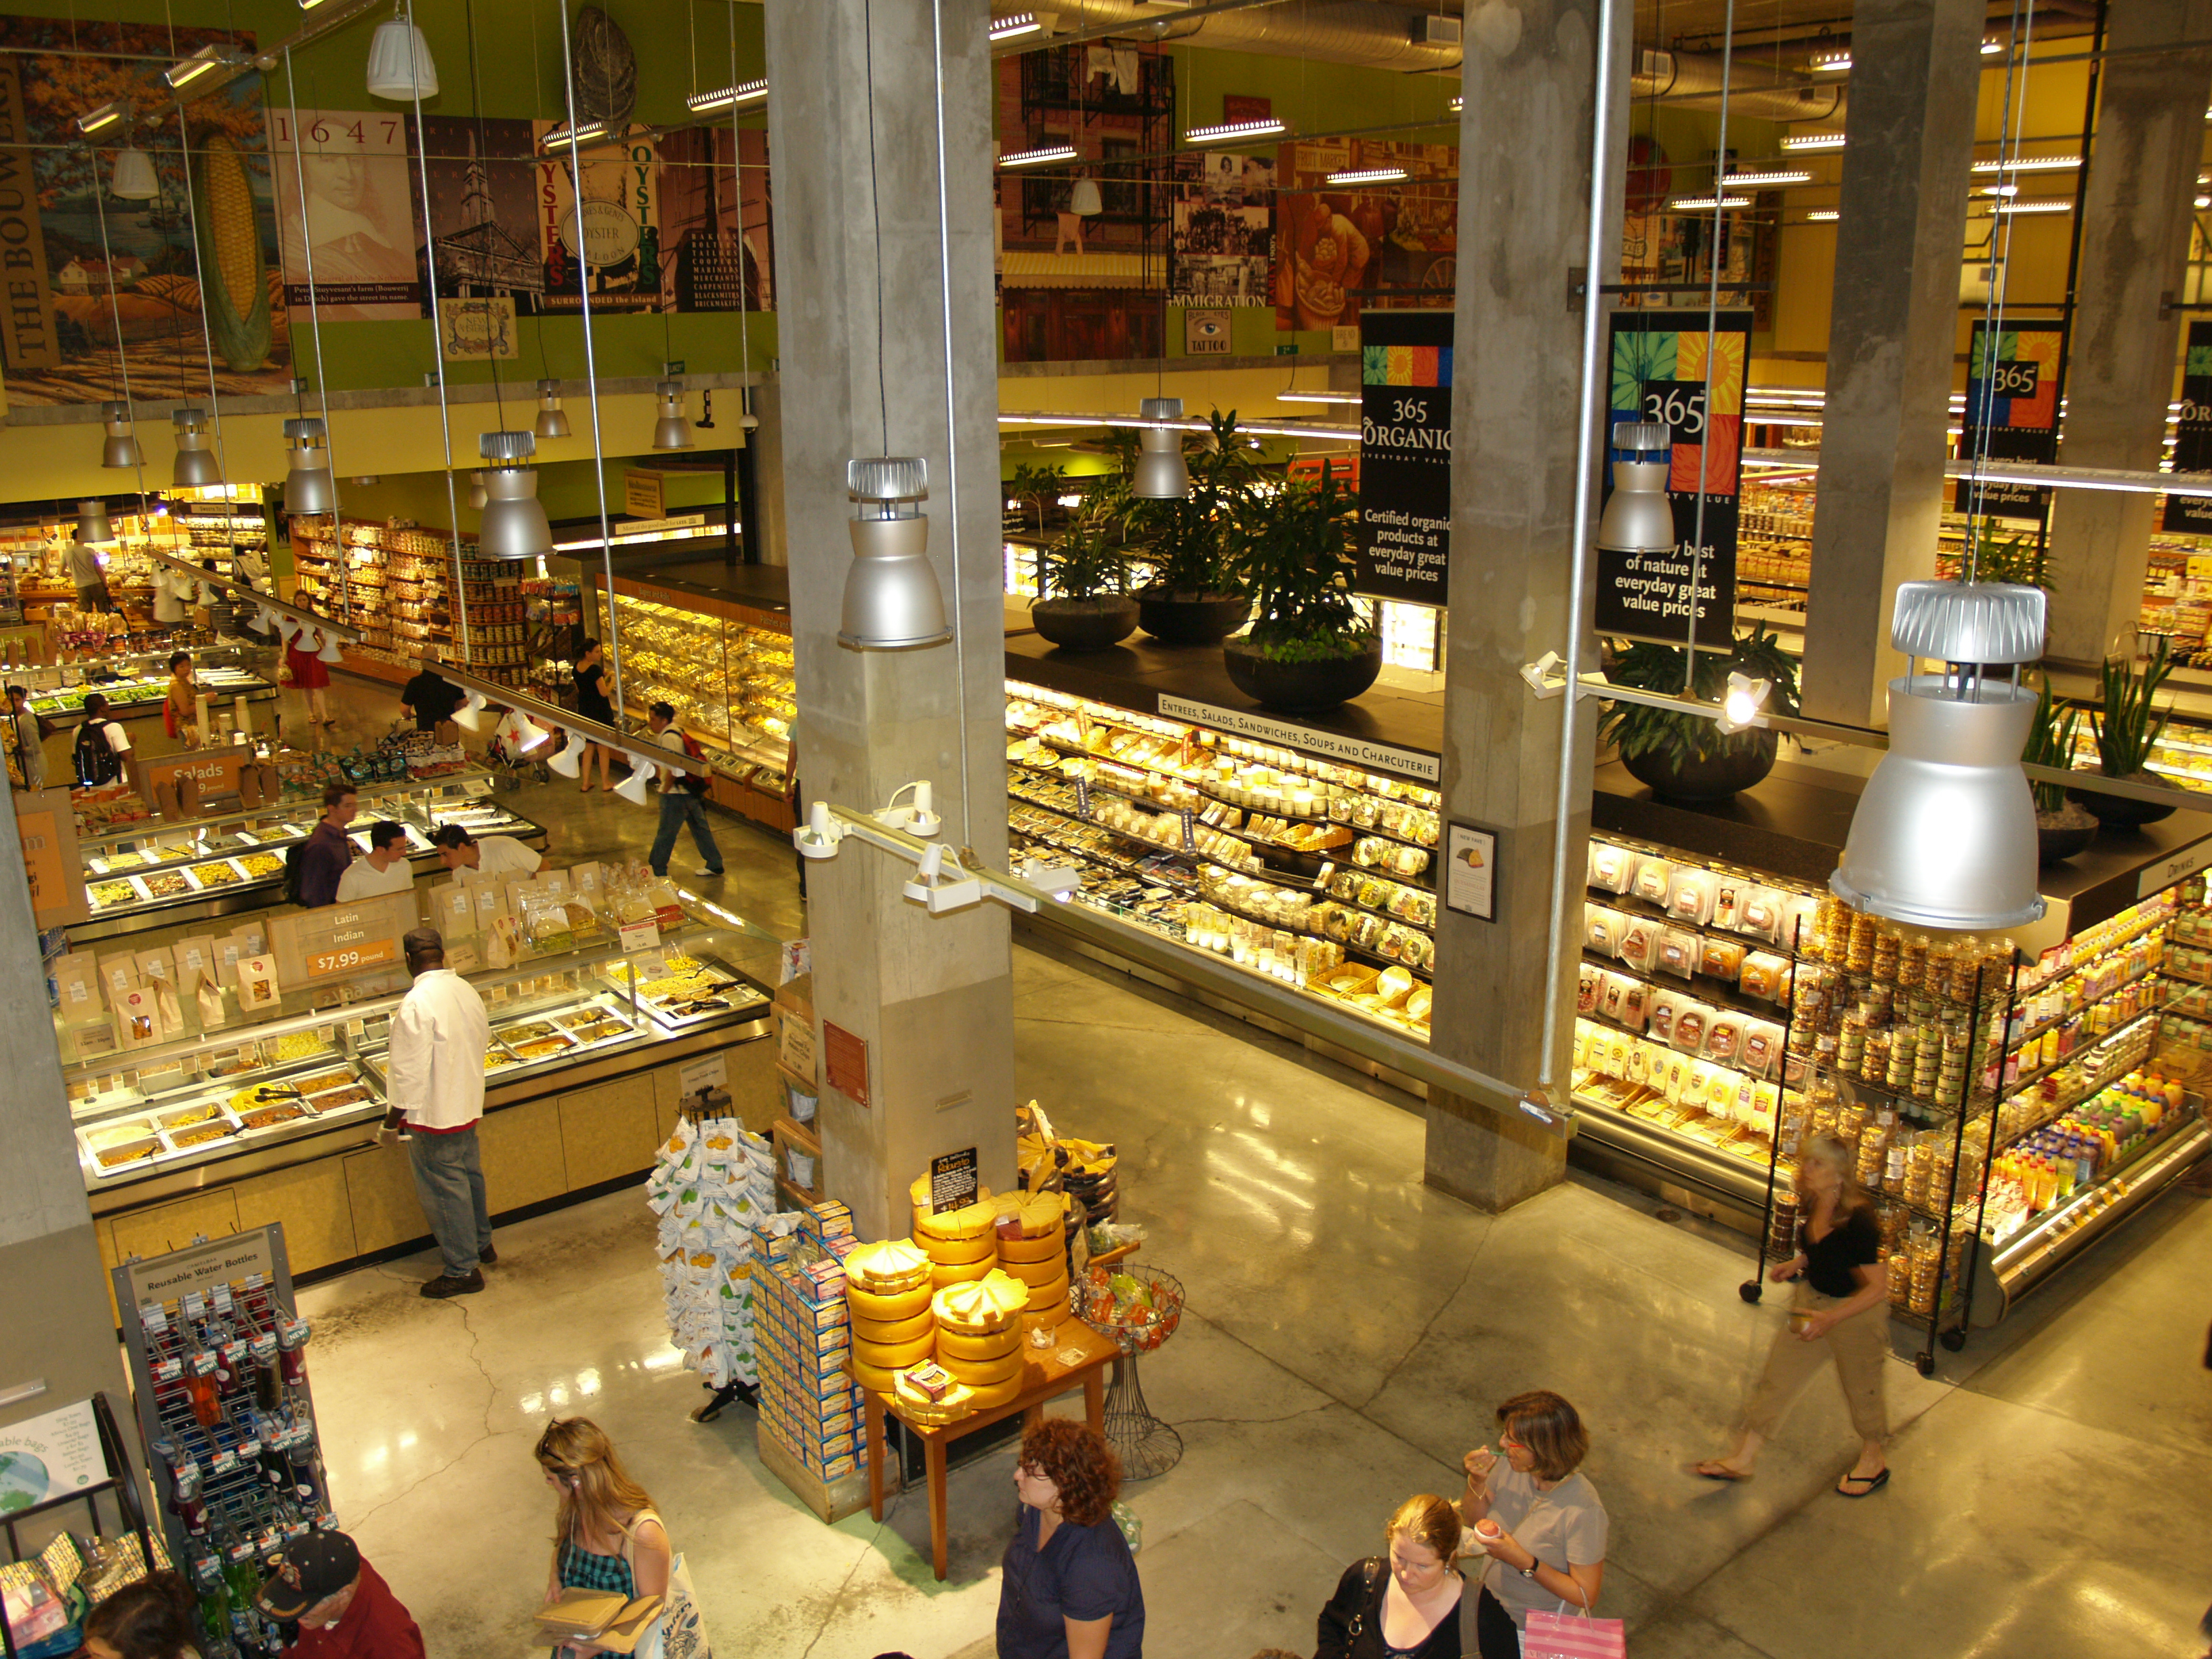 The Whole Foods Market on Bowery, in Manhattan, is the largest grocery store in New York City.[2]